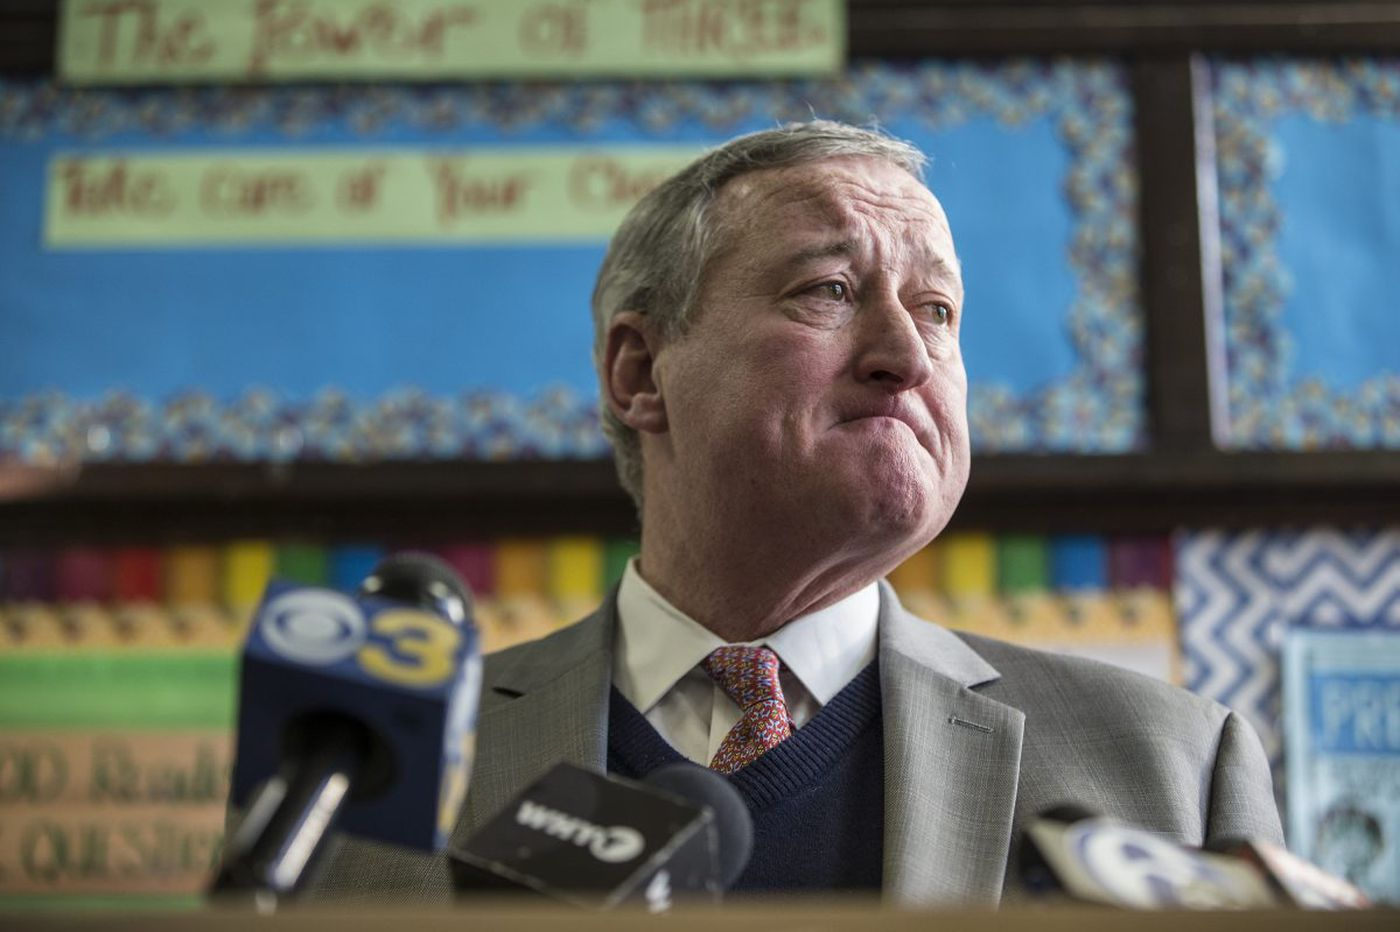 Mayor to seize control of Philly schools - and pay for them